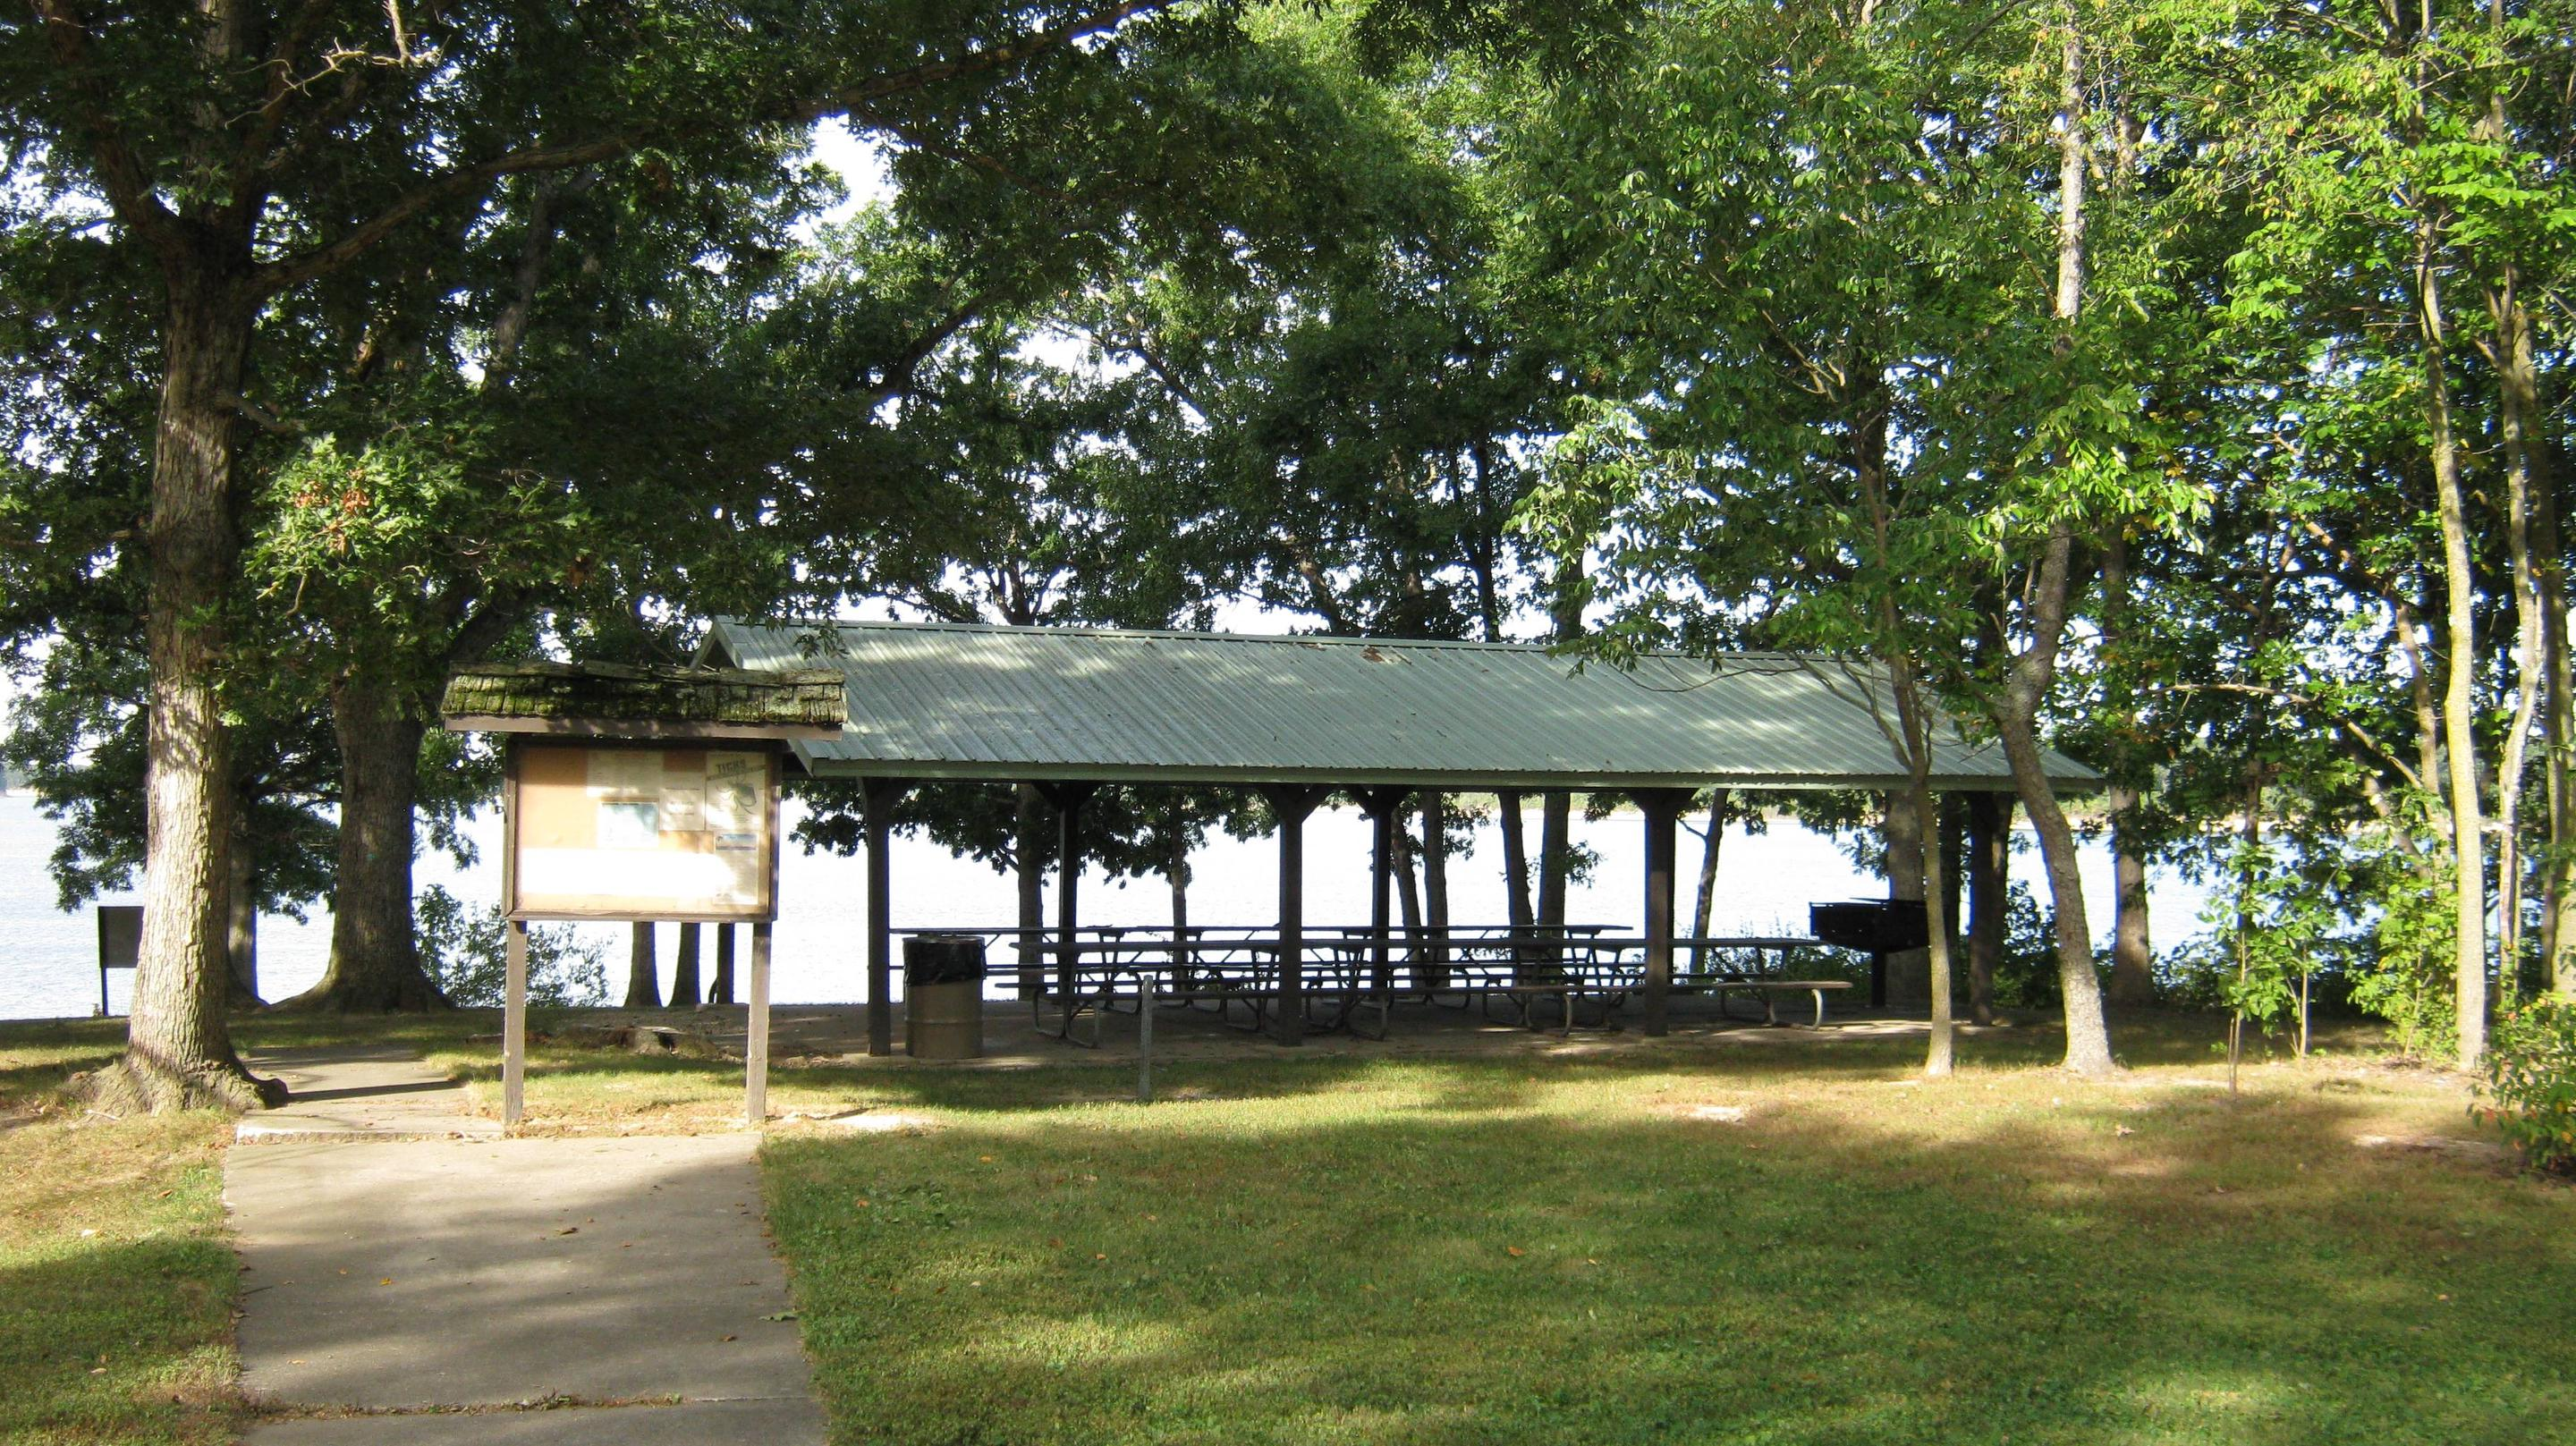 Picnic Shelter from Road